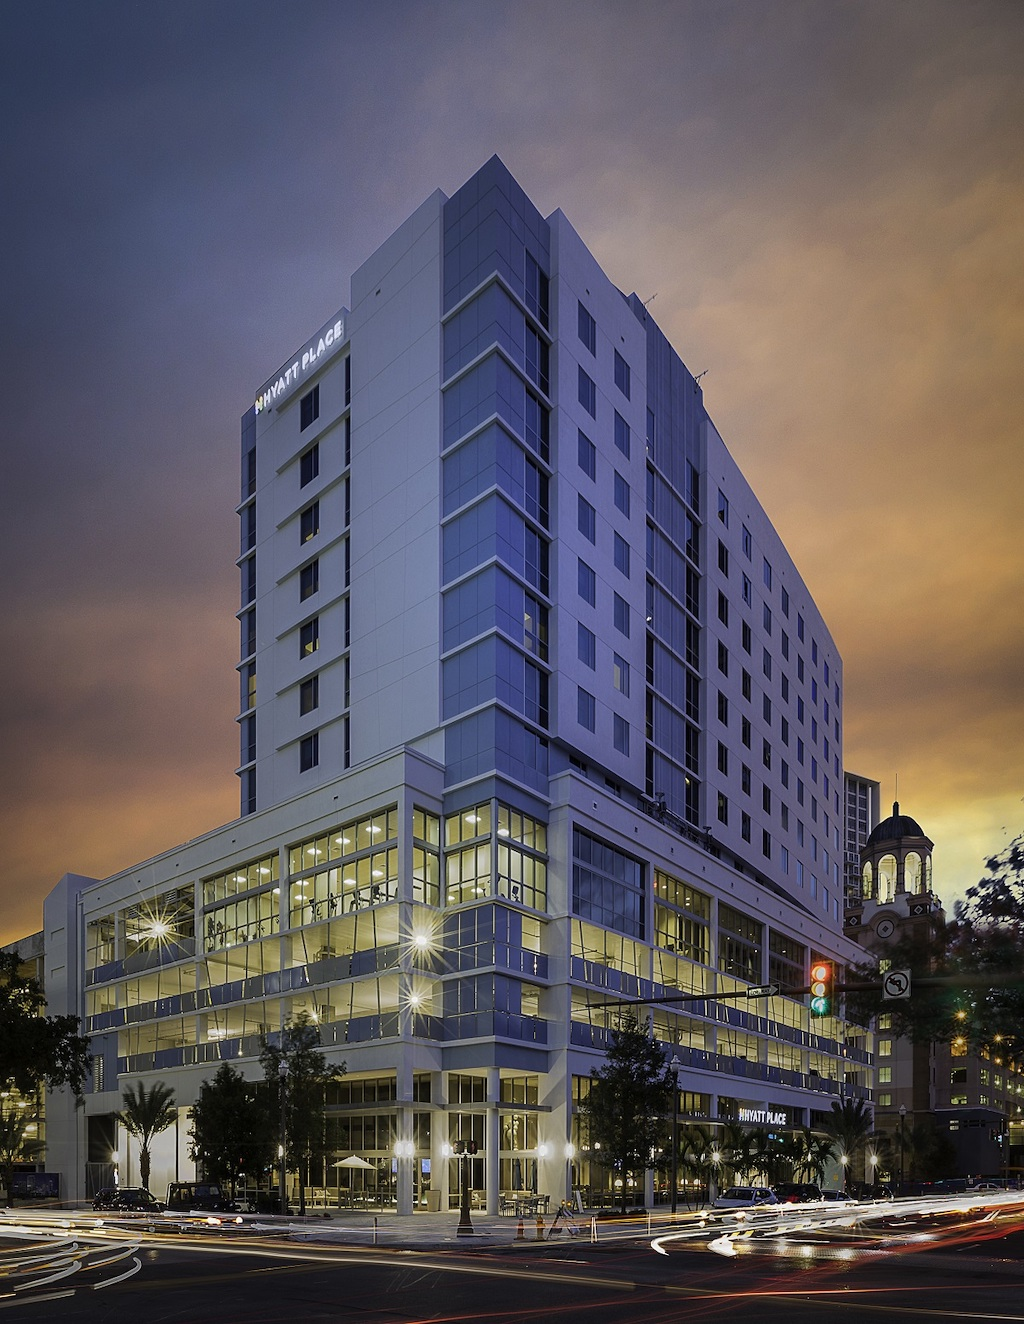 Downtown St. Pete Wedding Venue | Hyatt Place St. Petersburg Florida Downtown